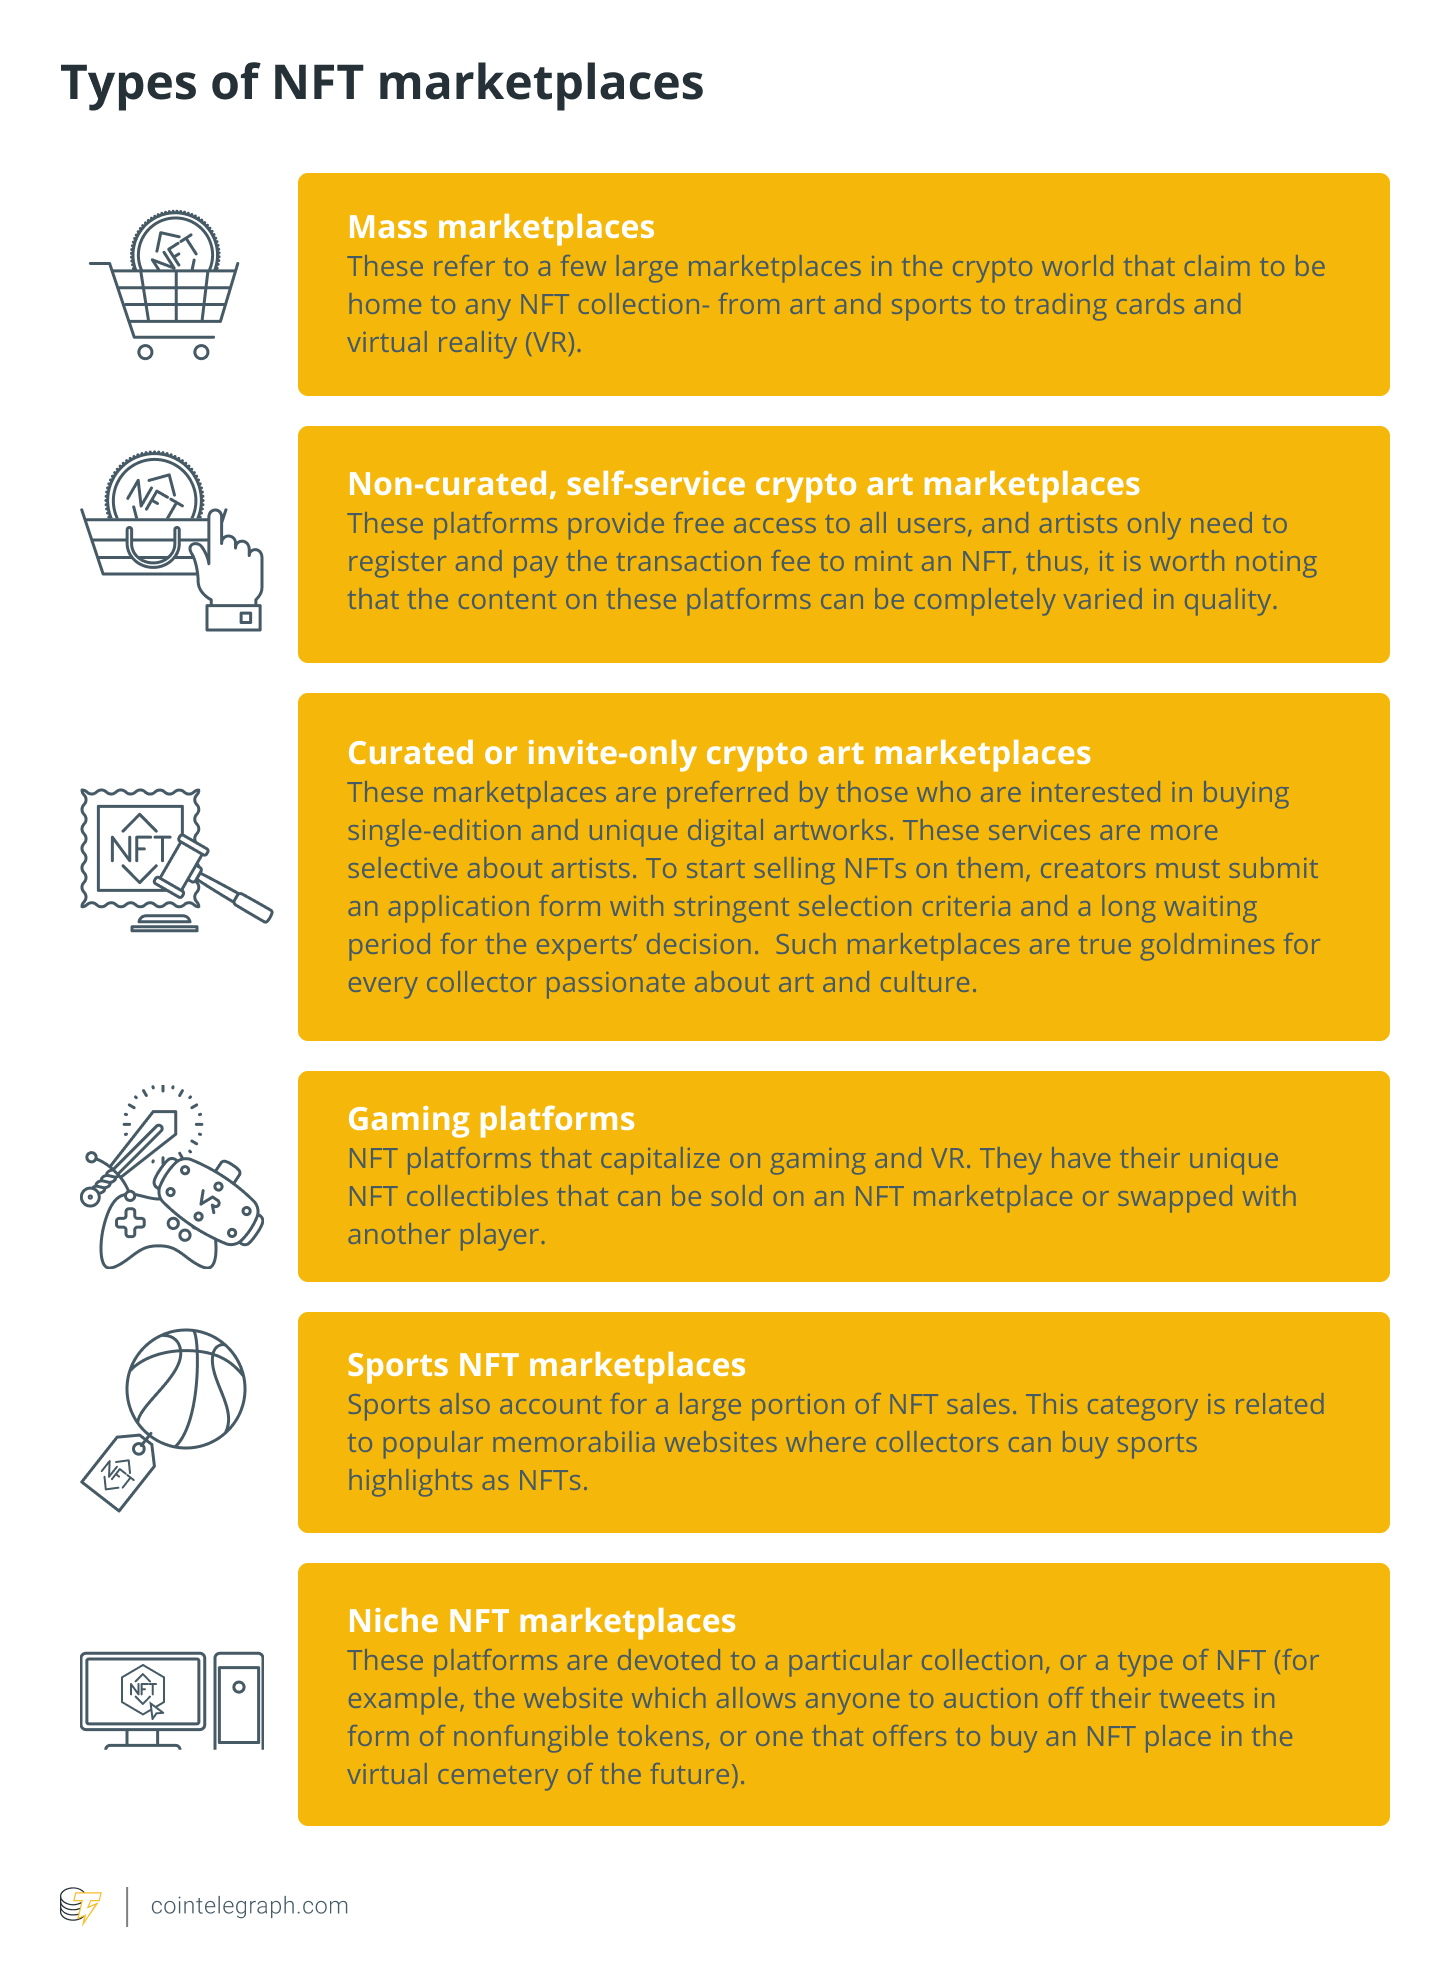 Types of NFT marketplaces